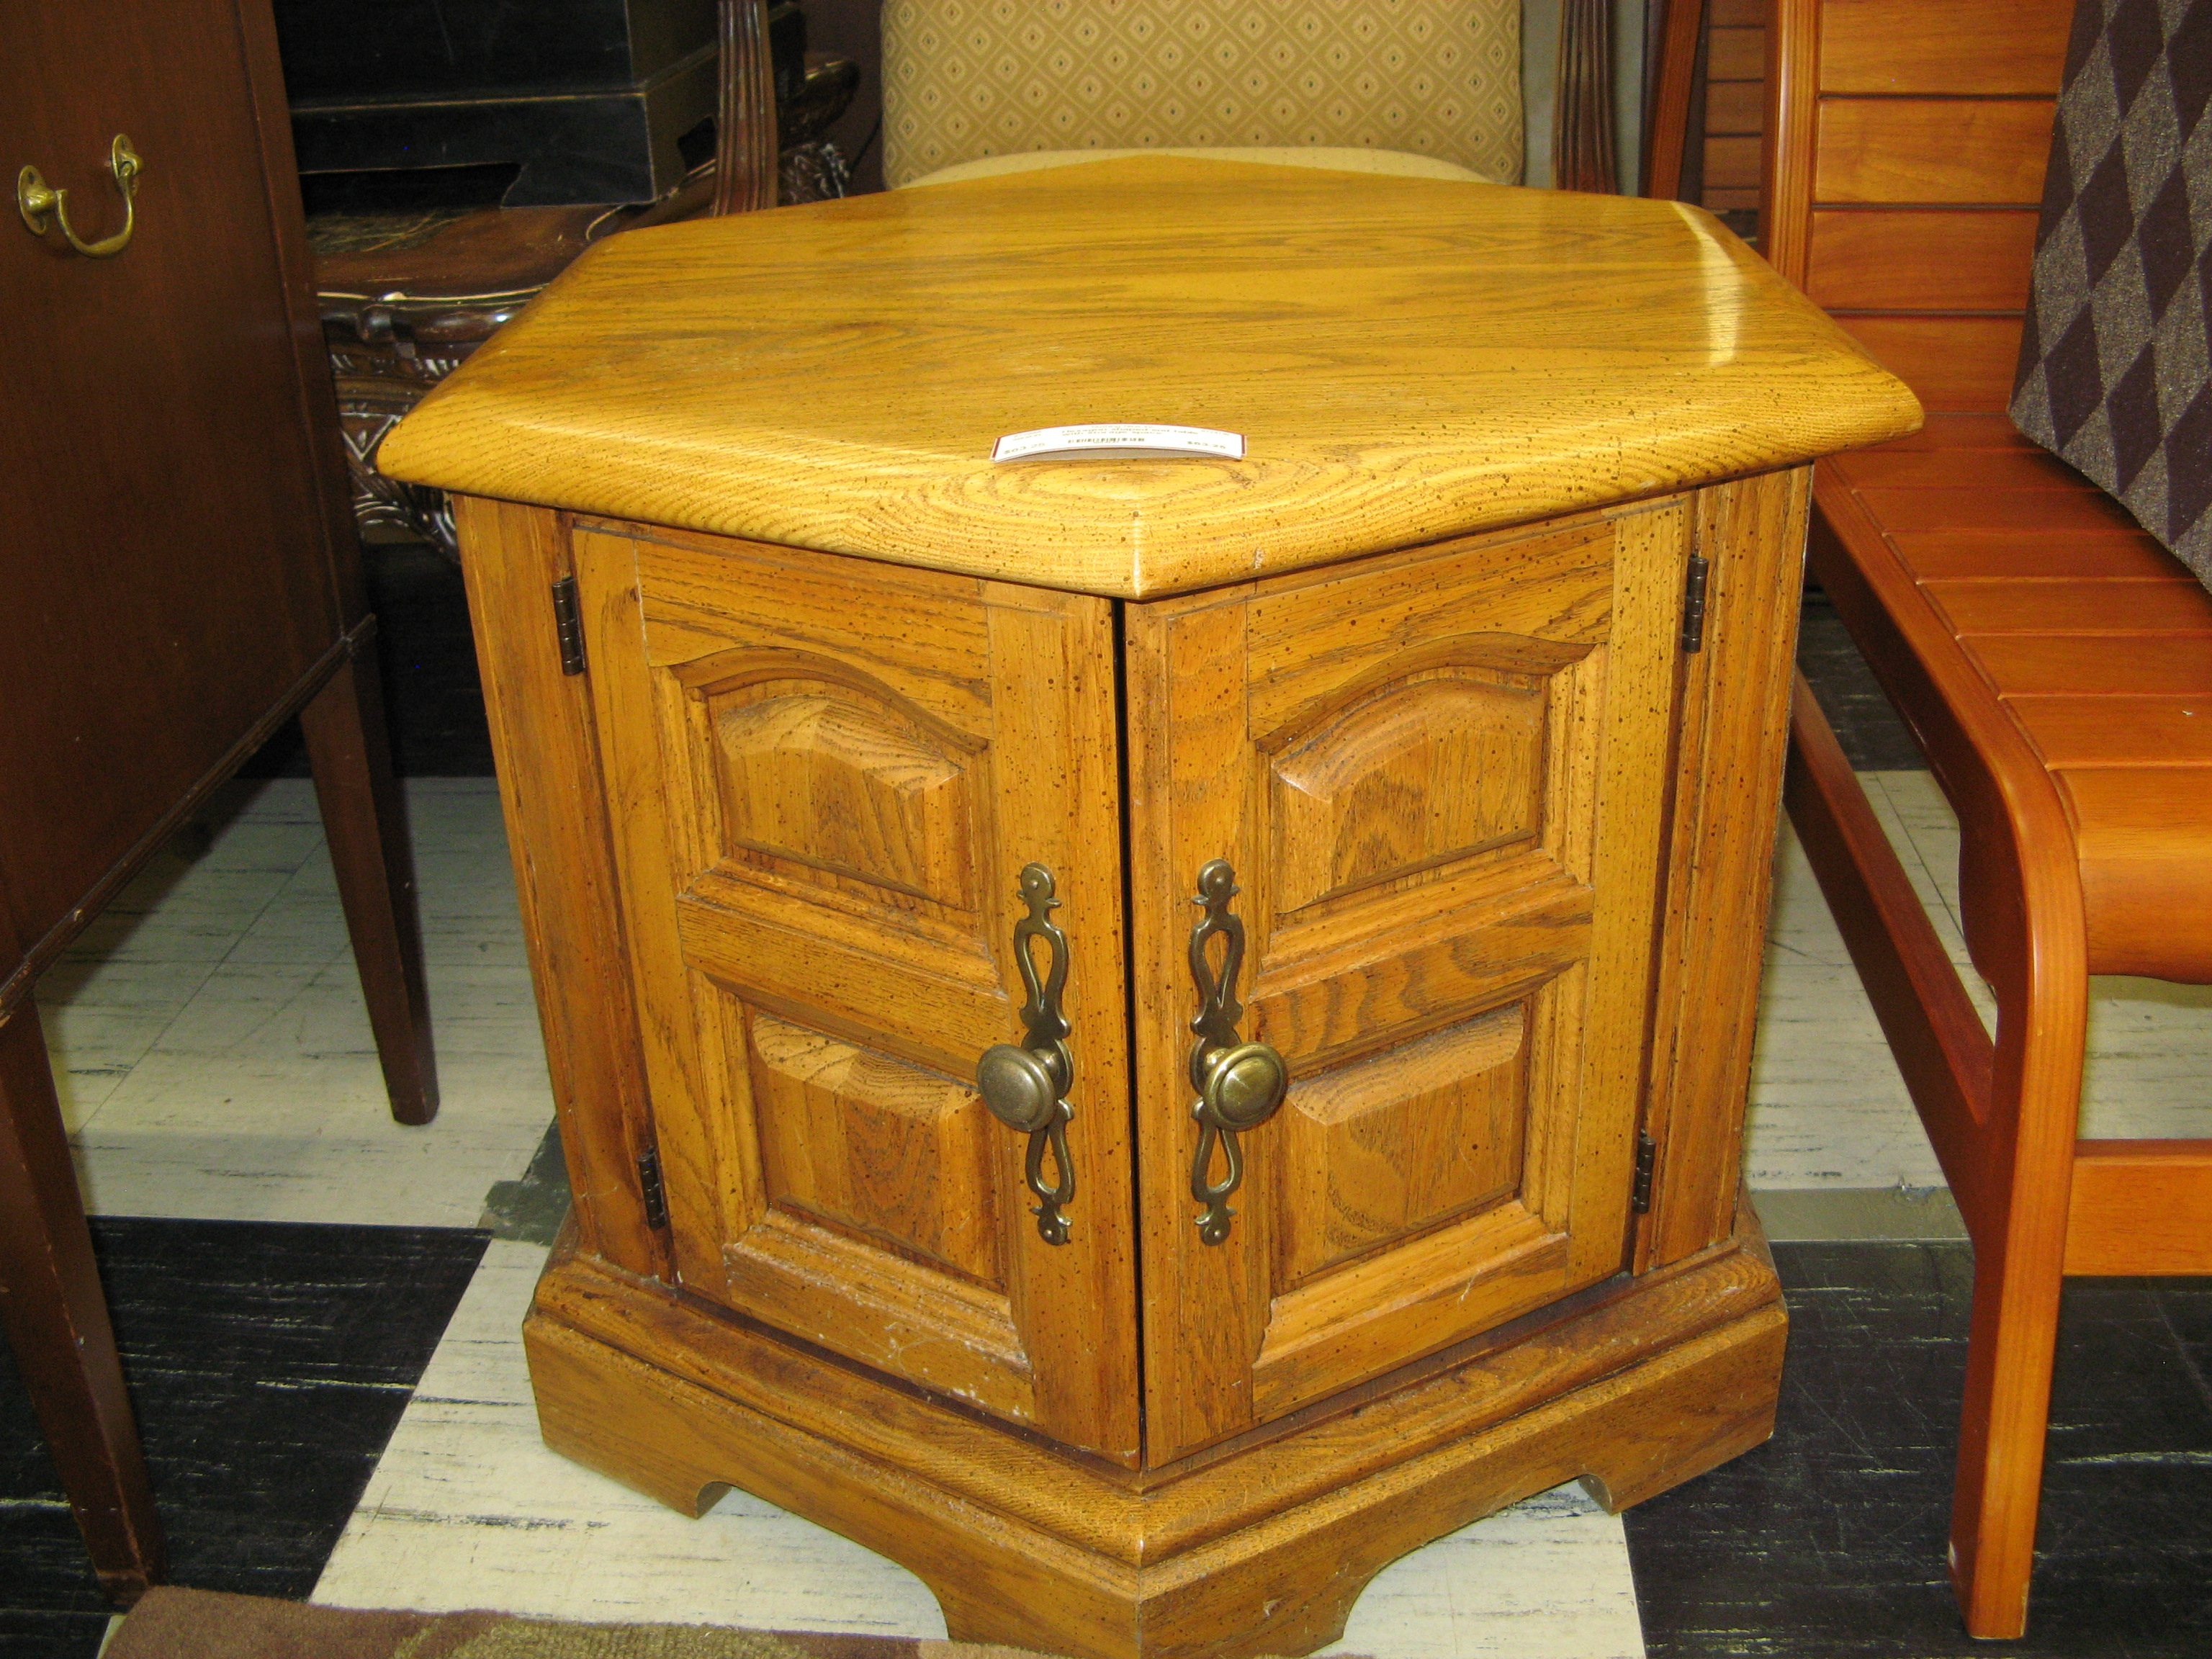 Hexagonal Oak End Table with Storage Space Inside